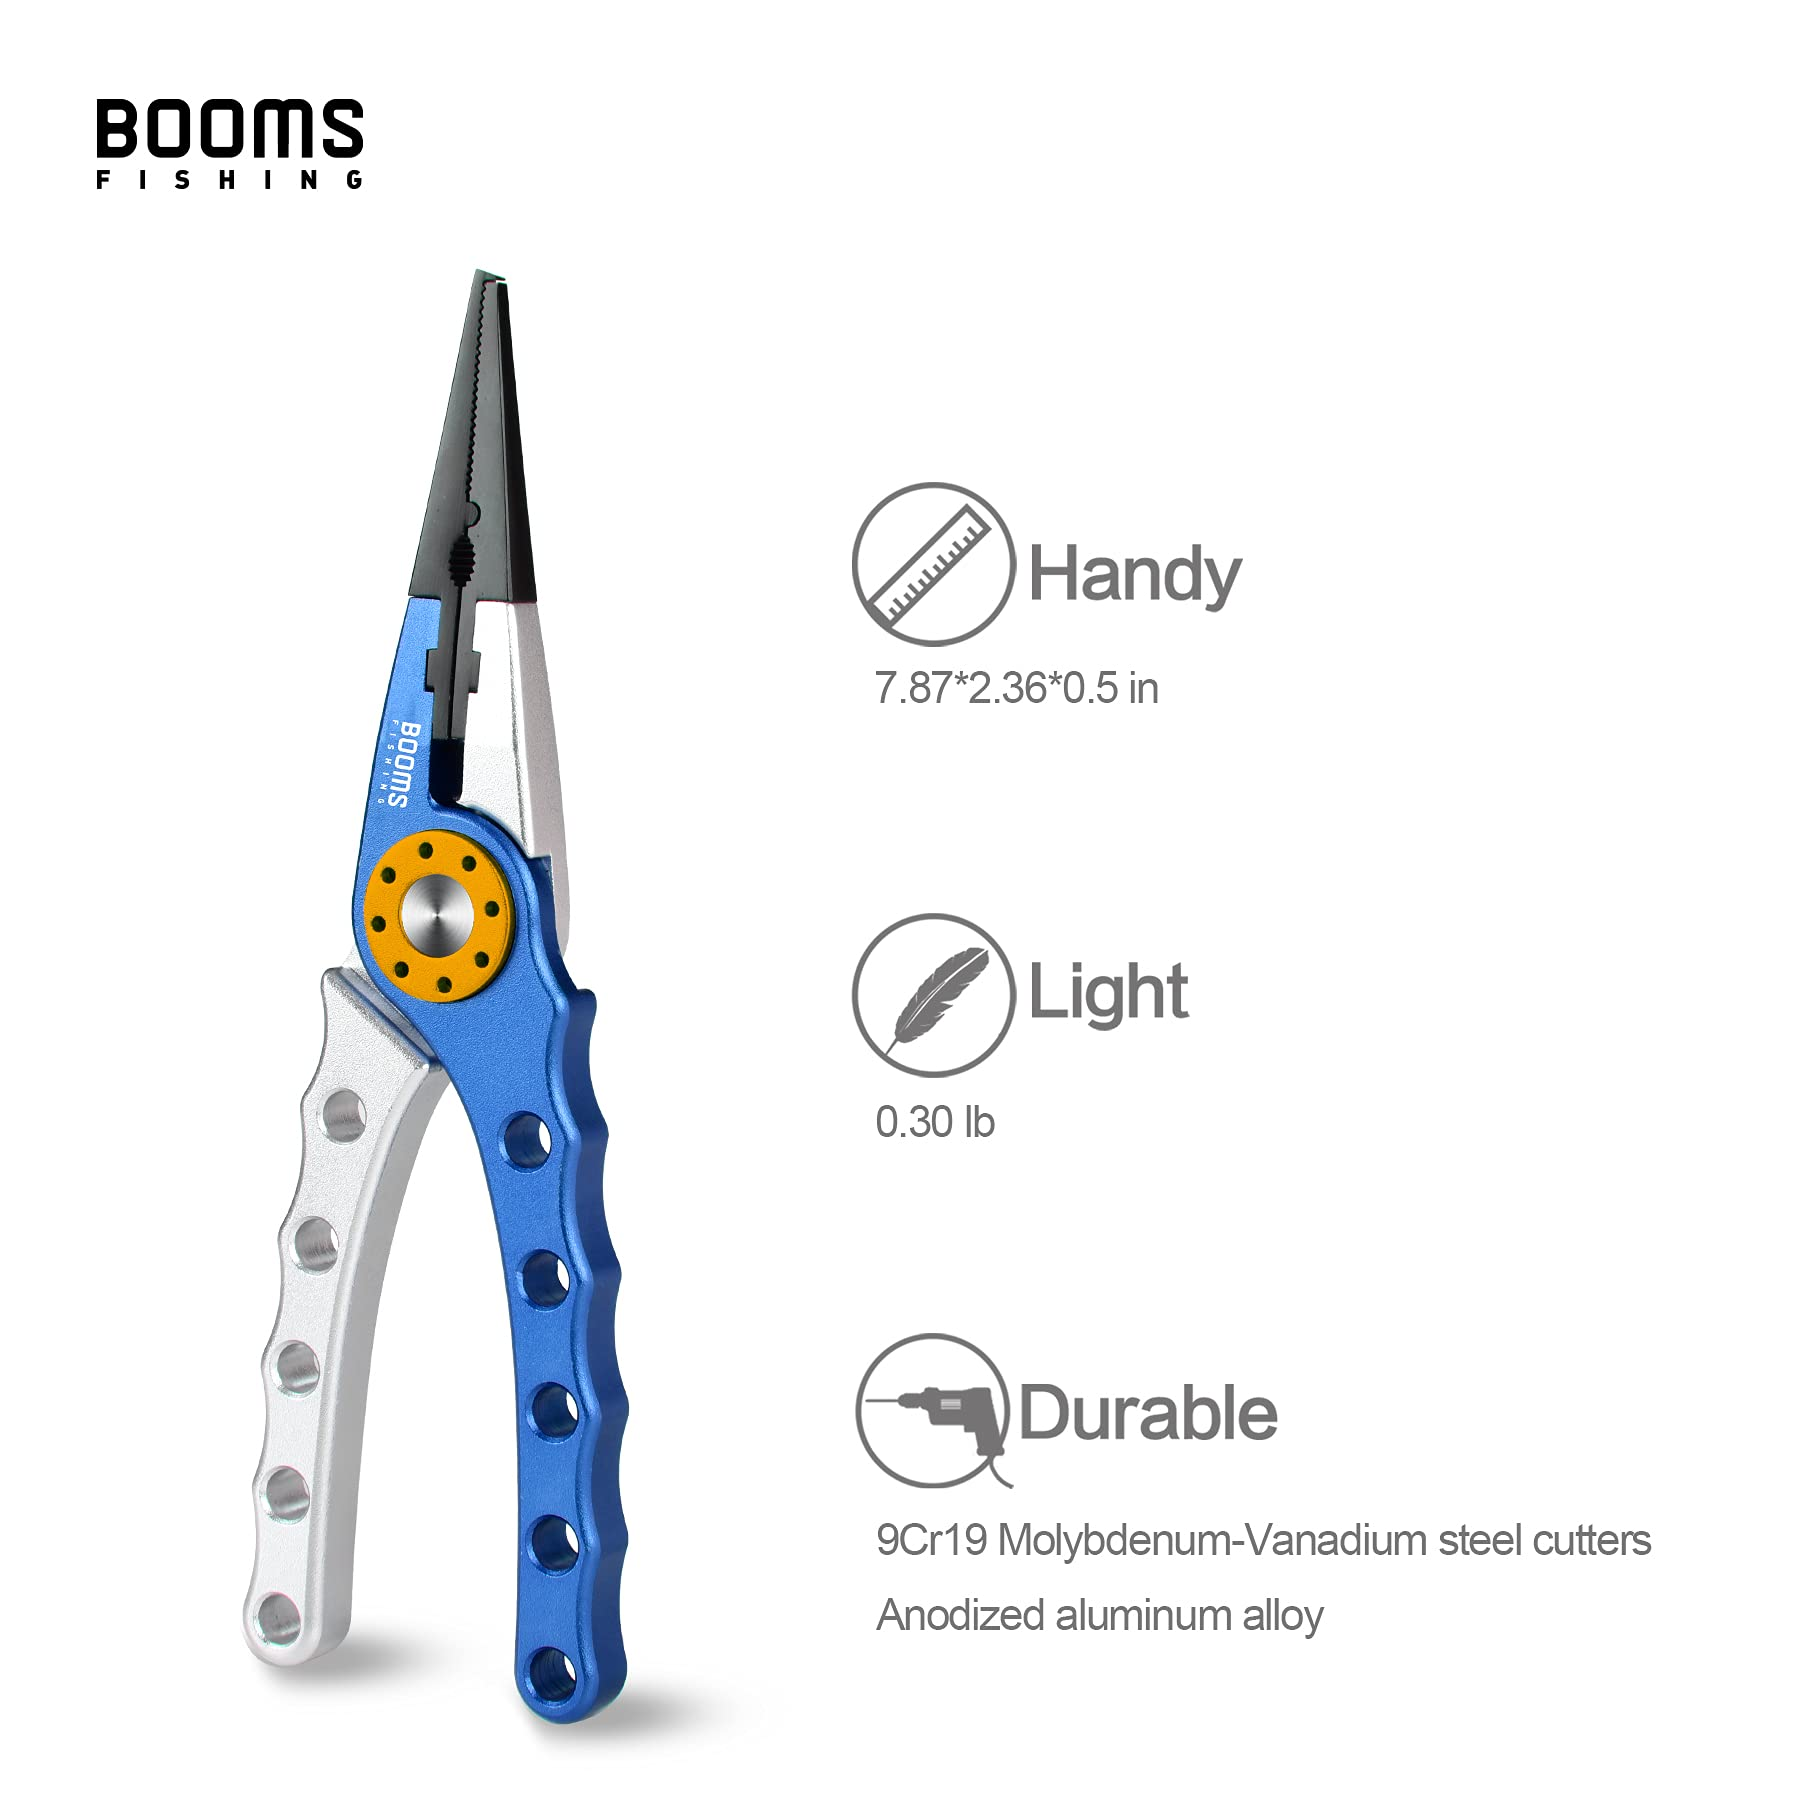 Booms Fishing X1 Aluminum Fishing Pliers Saltwater, Surf Fishing Tackle Kit, Fishing Multitool Hook Remover Braided Fishing Line Cutting and Split Ring with Coiled Lanyard and Sheath